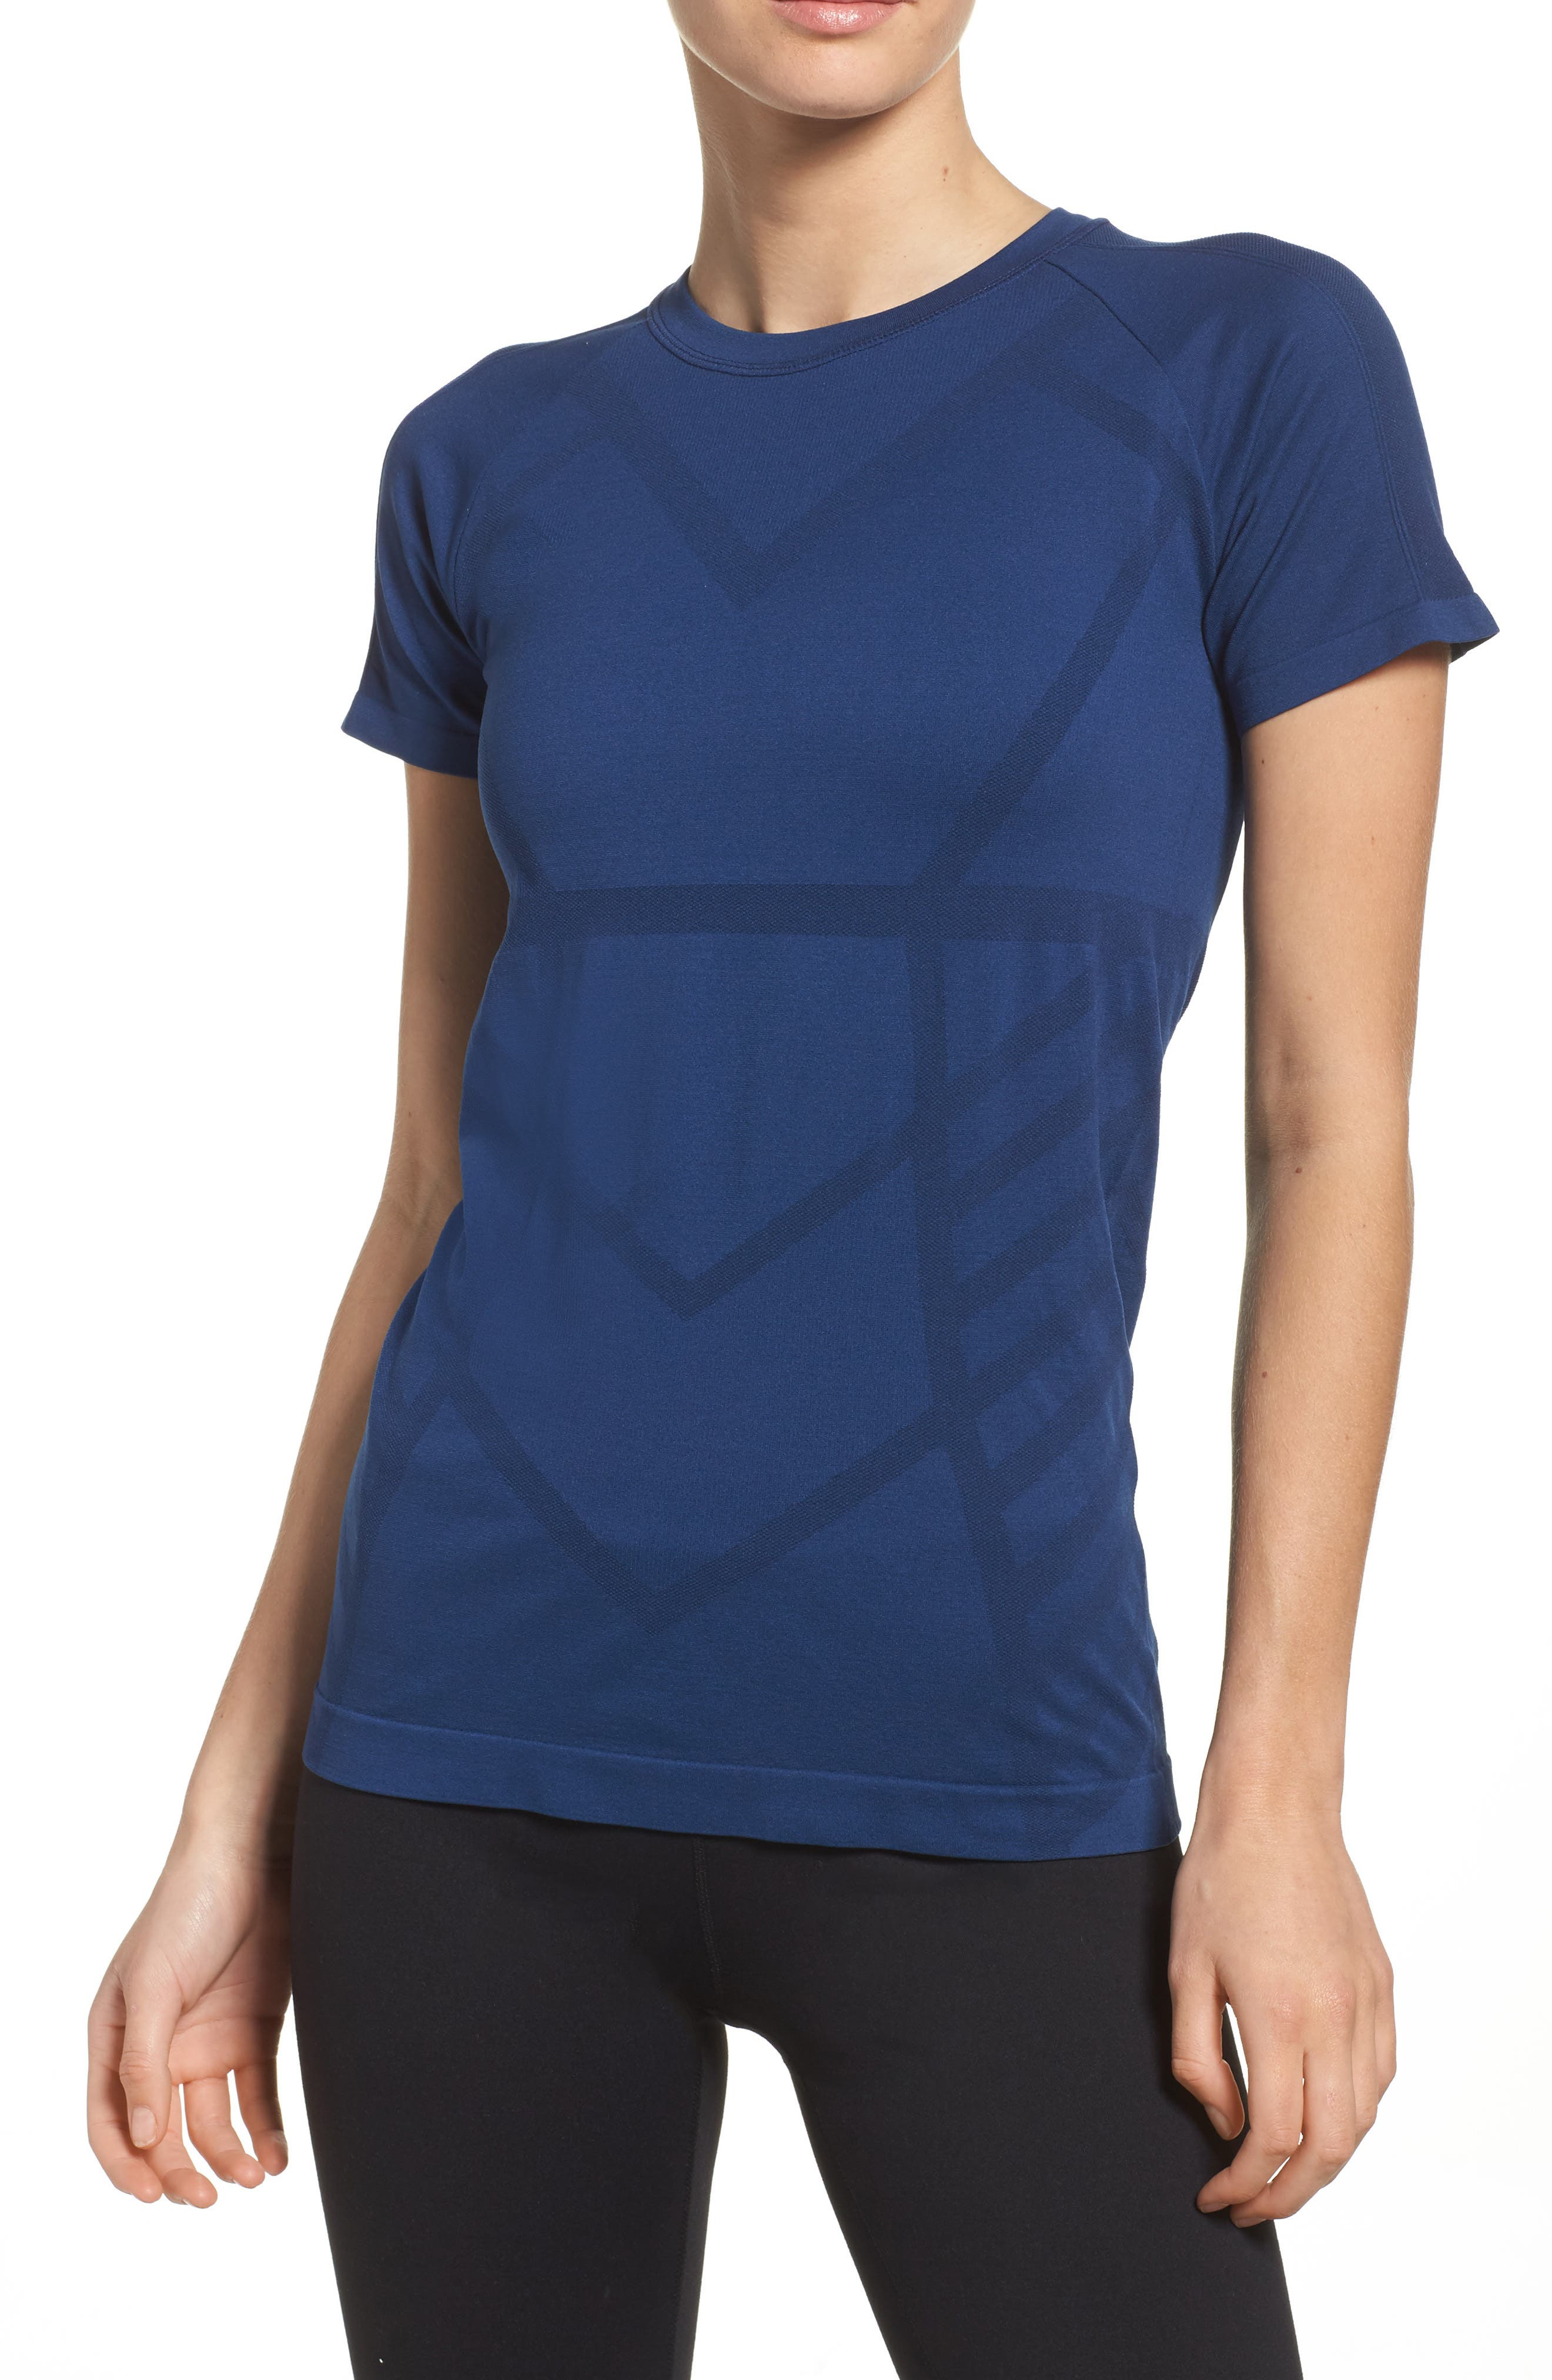 Climawear Power Up Tee